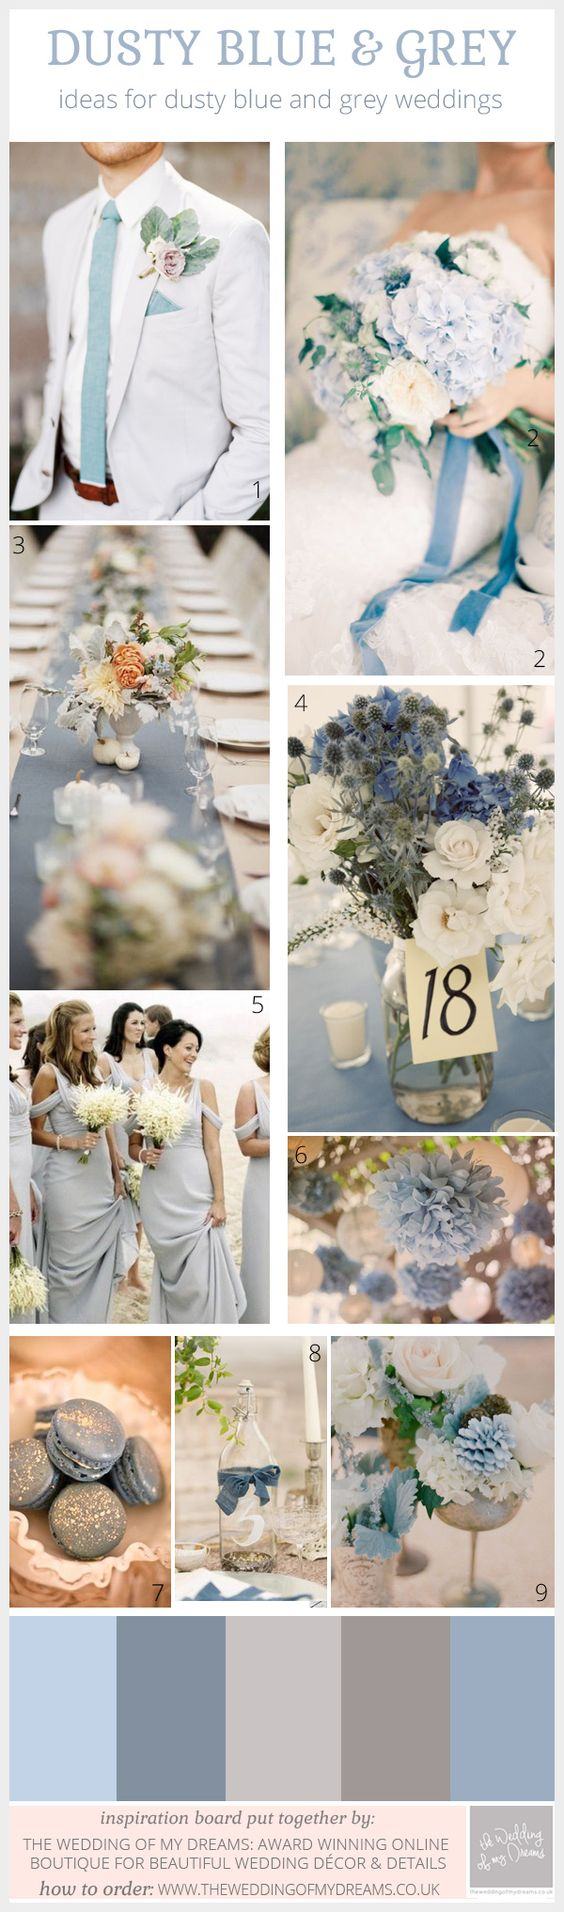 Wedding decorations garden december 2018 Dusty Blue u Grey  Wedding Ideas  Pinterest  Dusty blue Blue